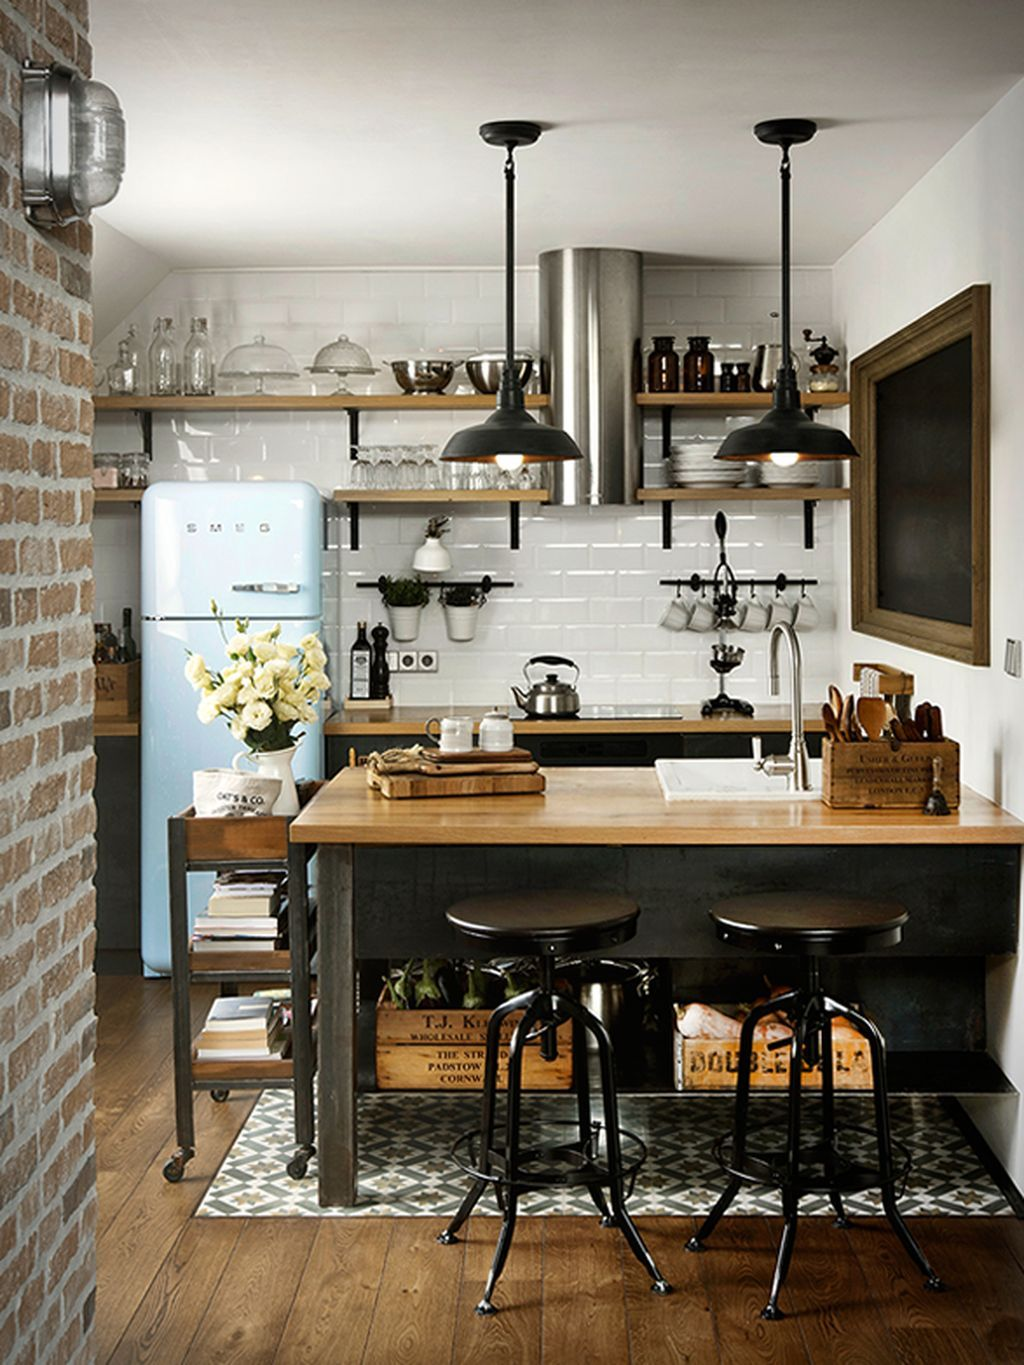 Kitchen Room Interior Design: 60+ Small Modern Industrial Apartment Decoration Ideas